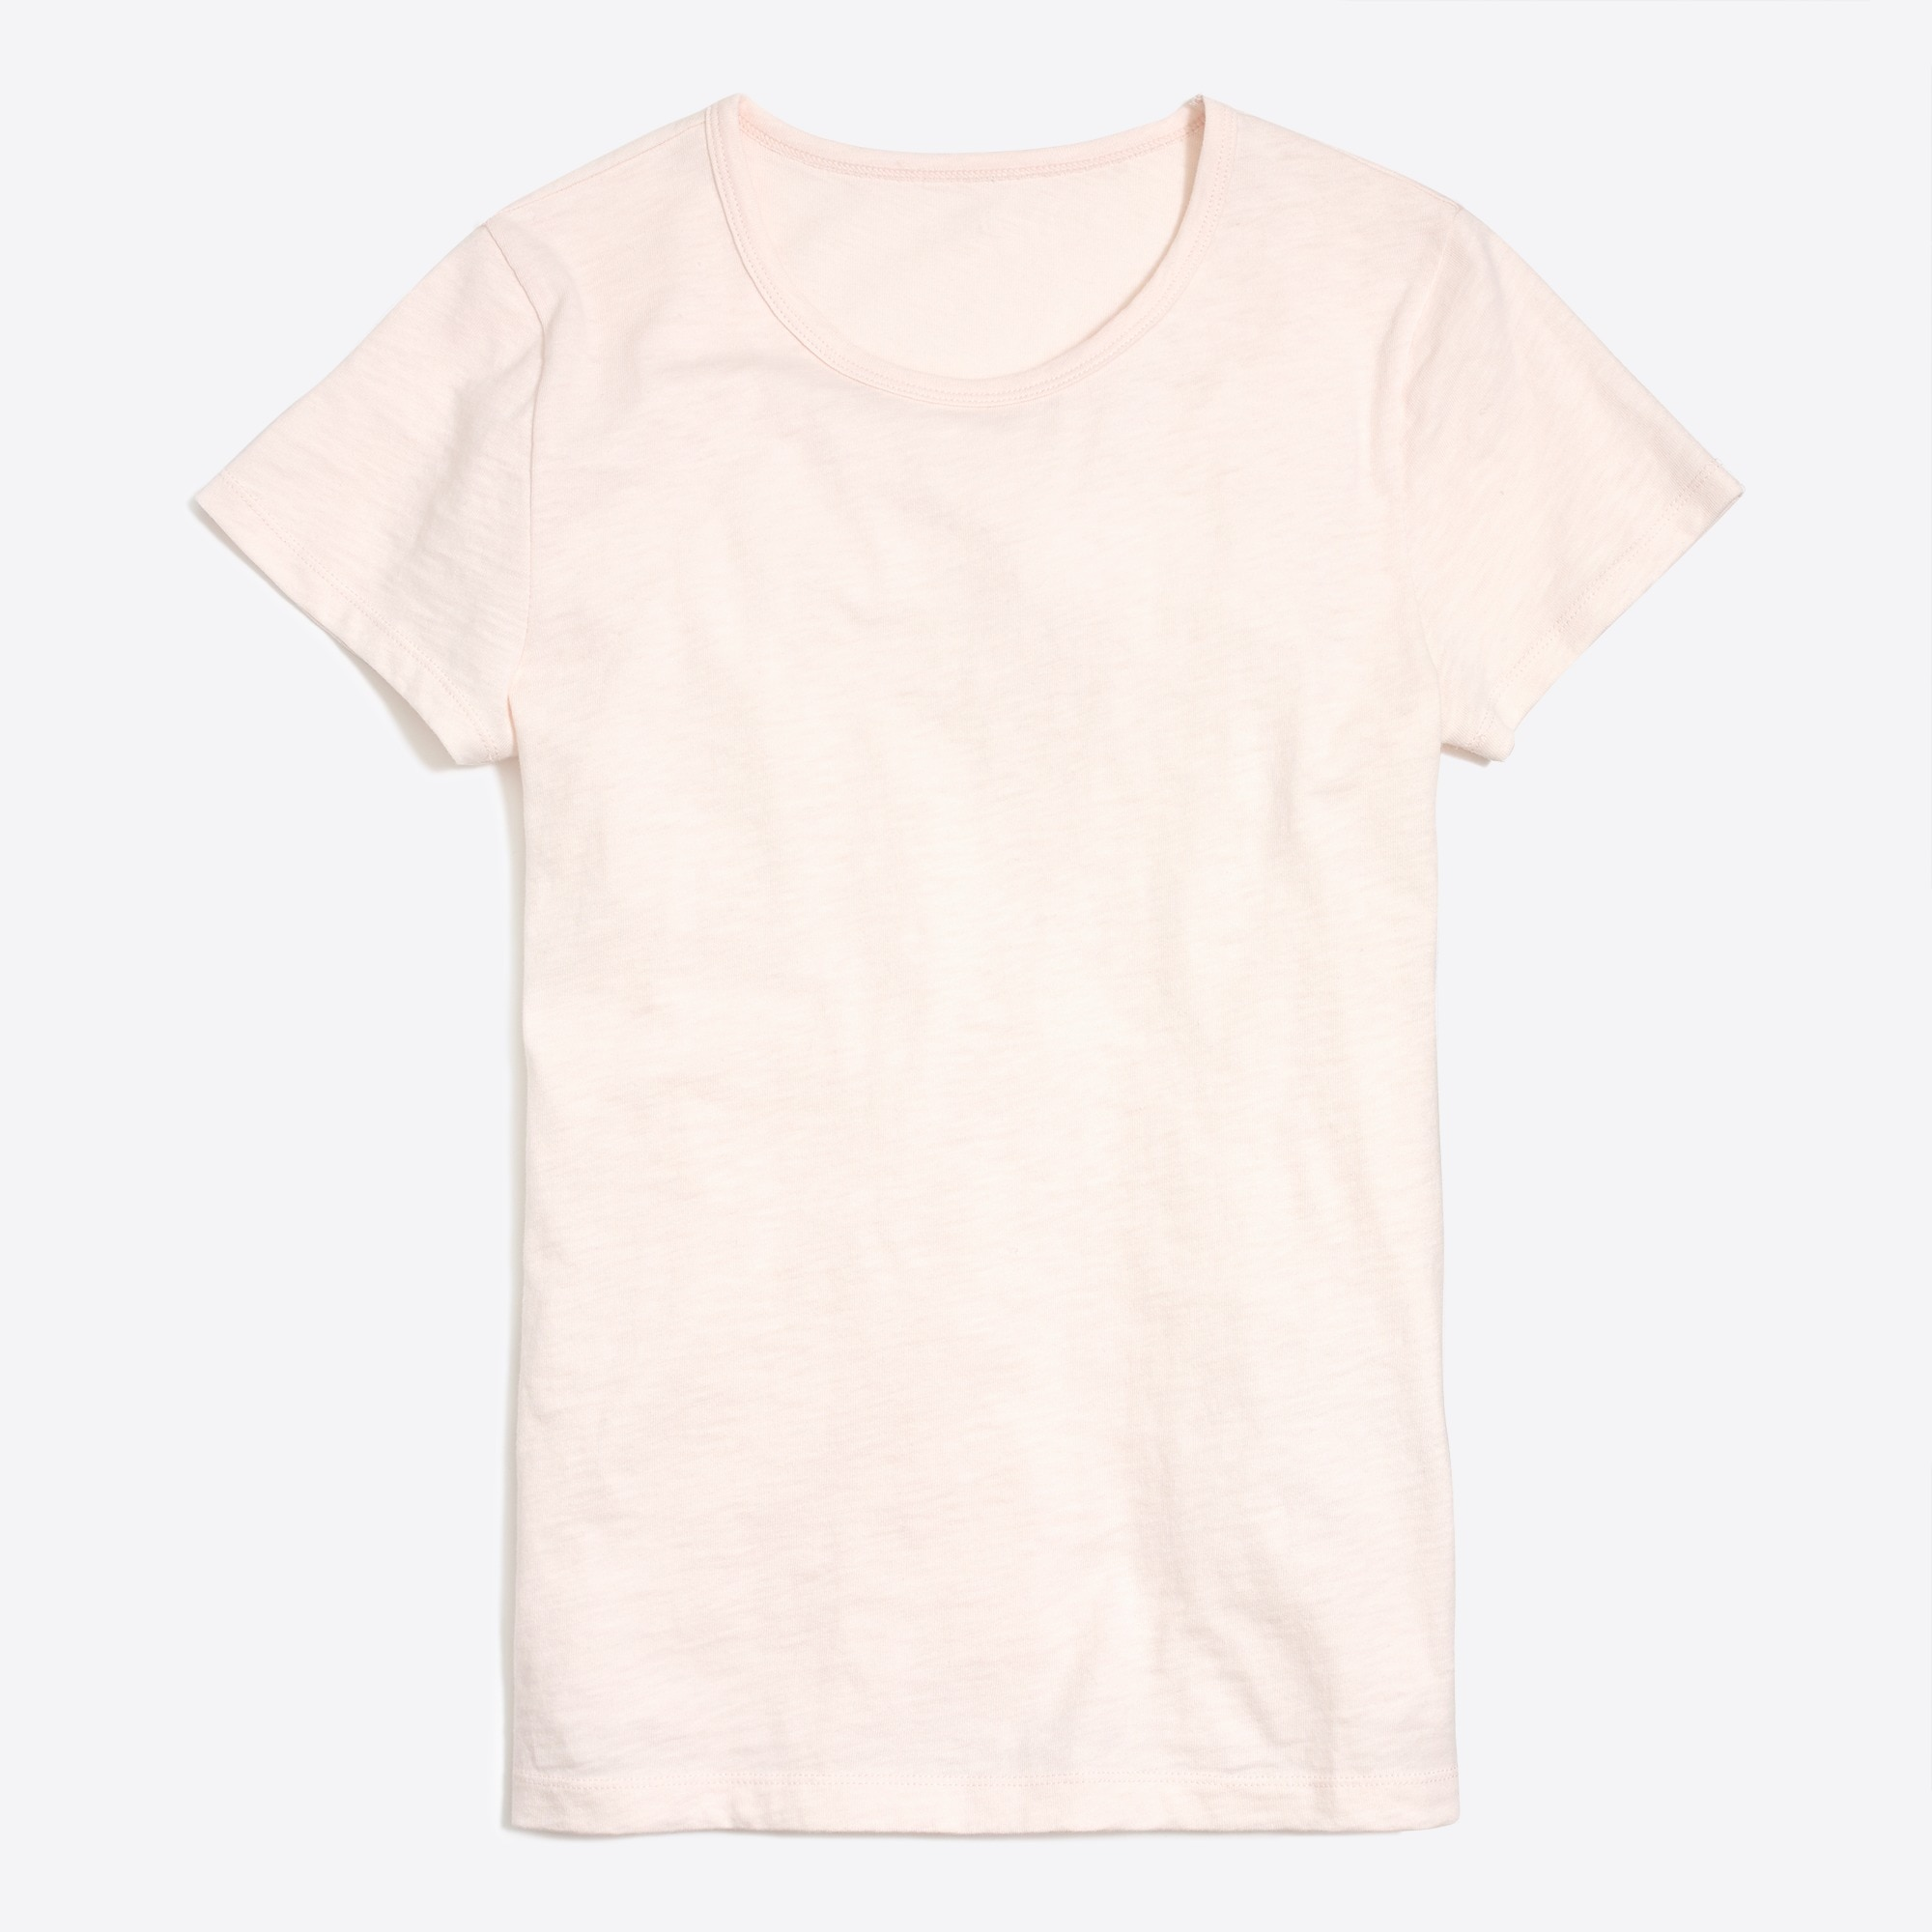 J.Crew Mercantile Studio T-shirt factorywomen new arrivals c